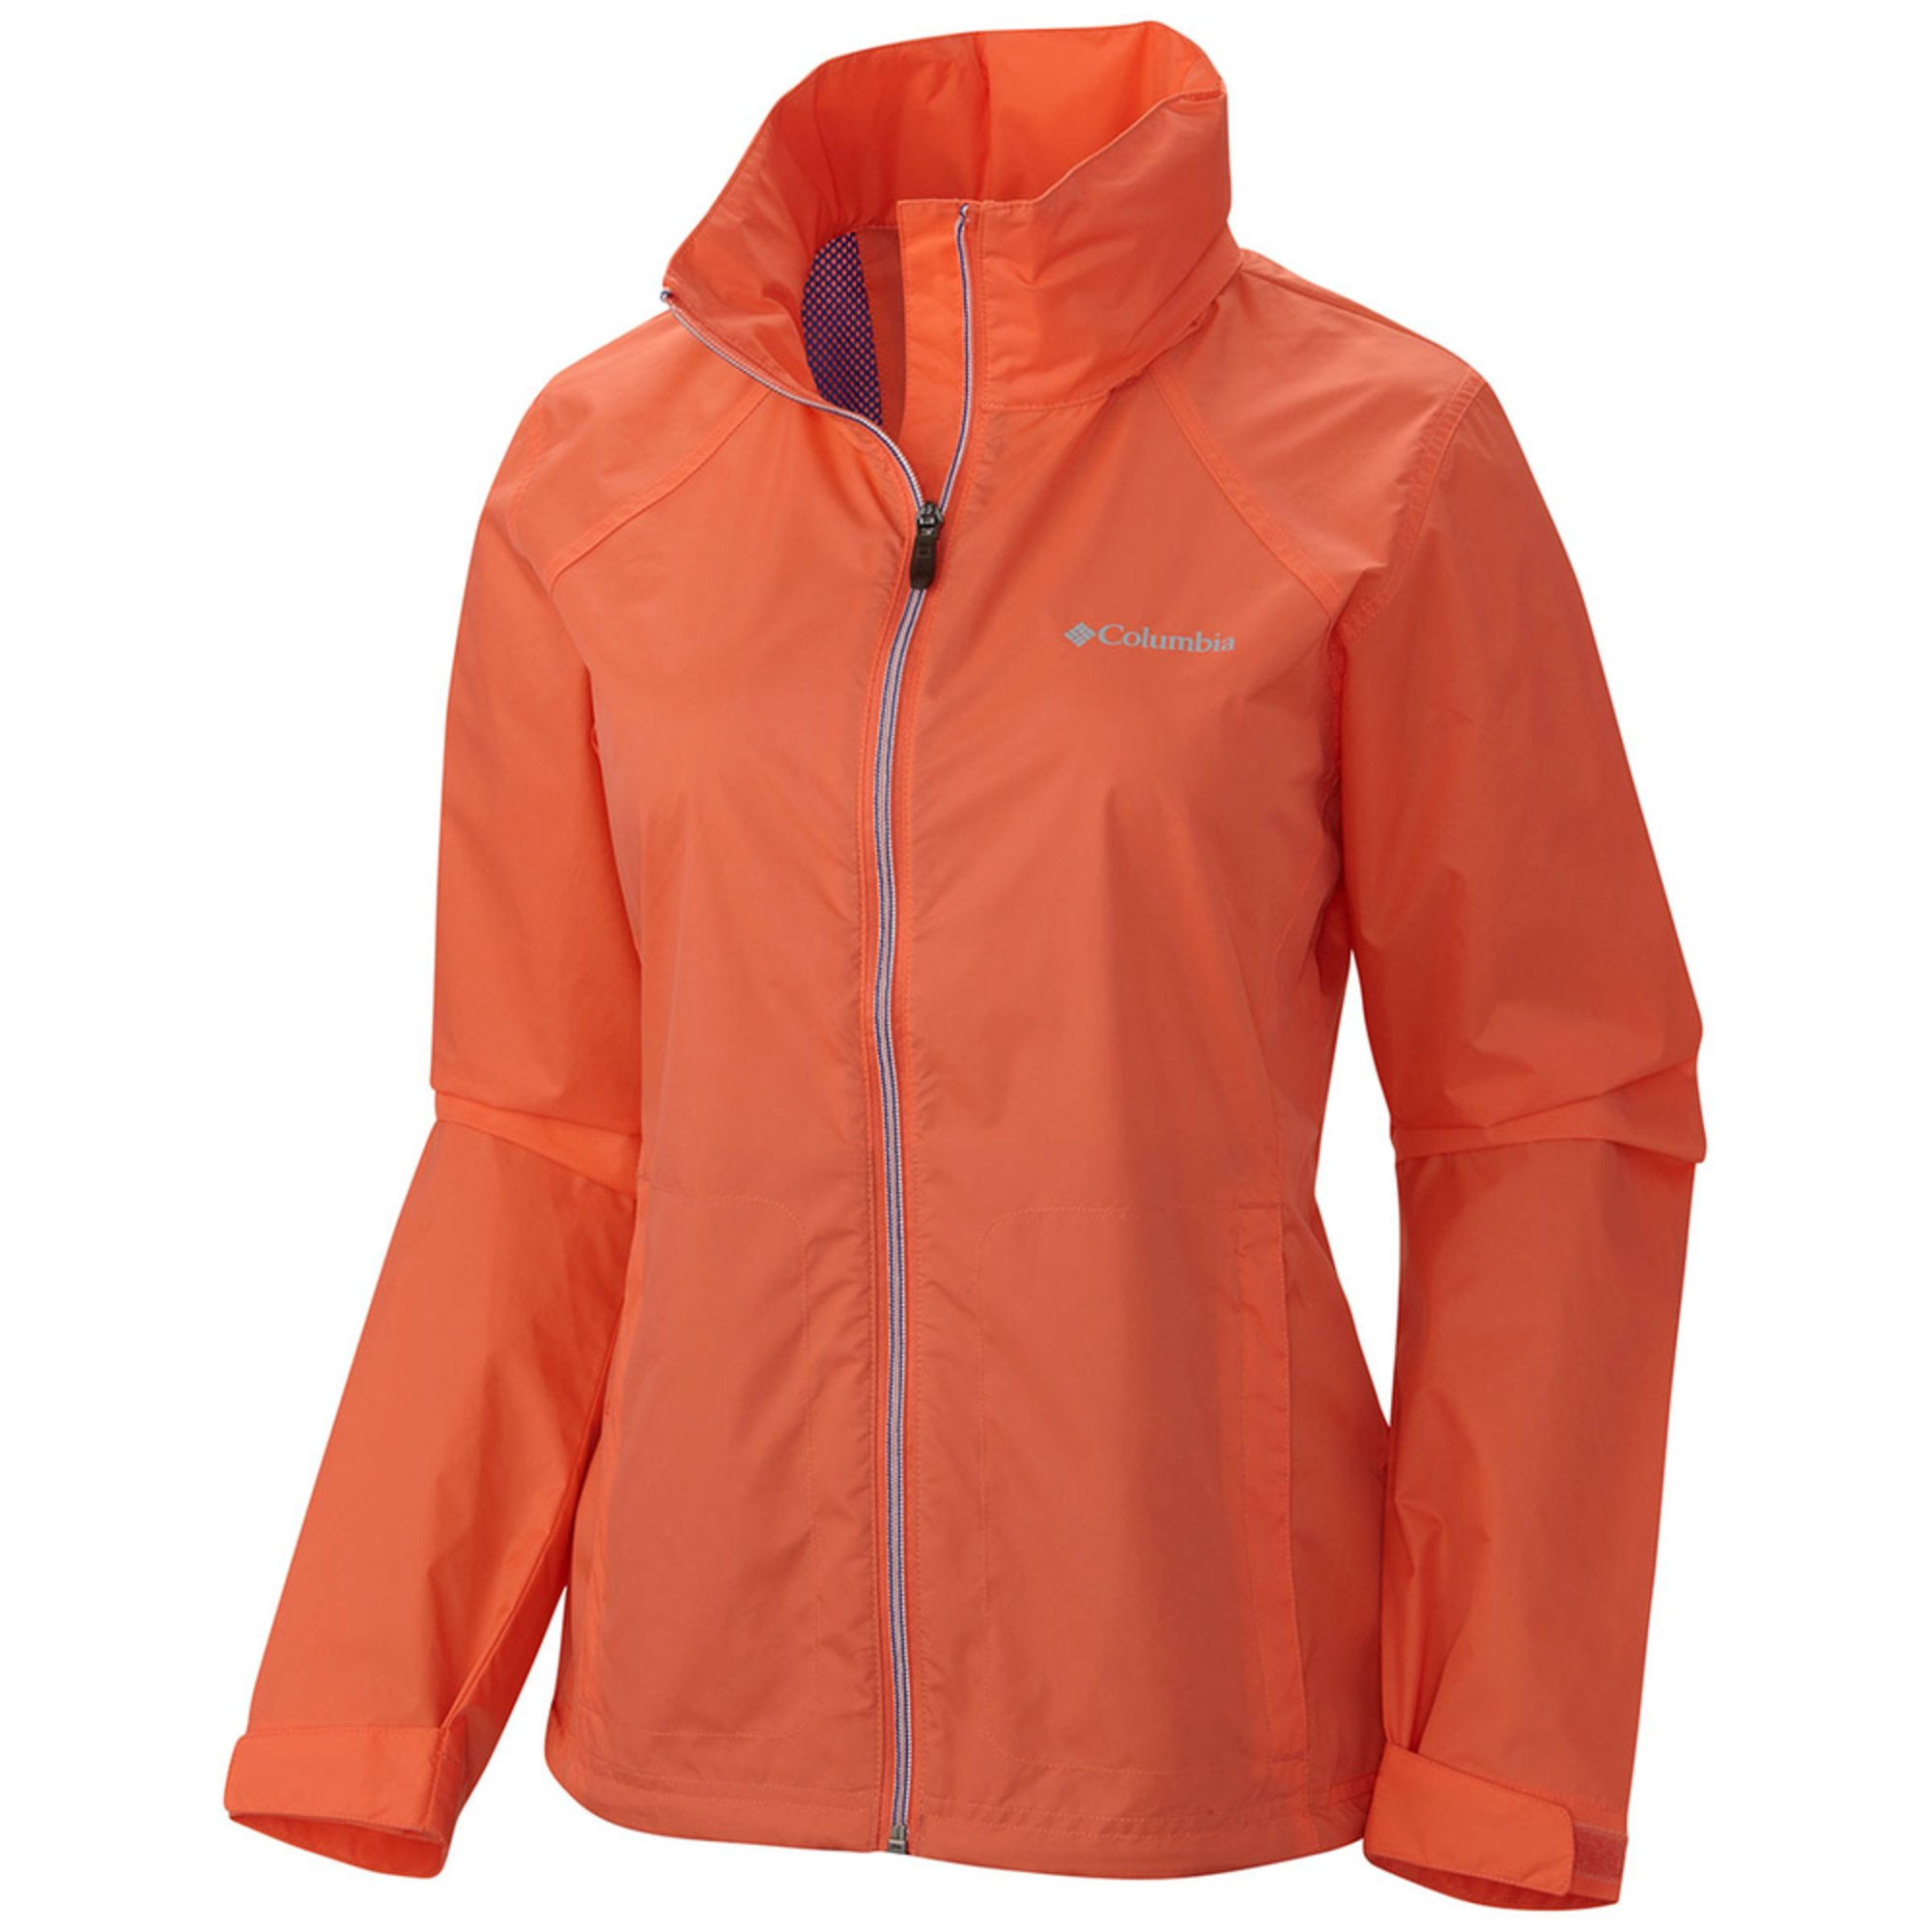 84b11a0487a Columbia Women s Switchback Ii Women s Rain Jacket